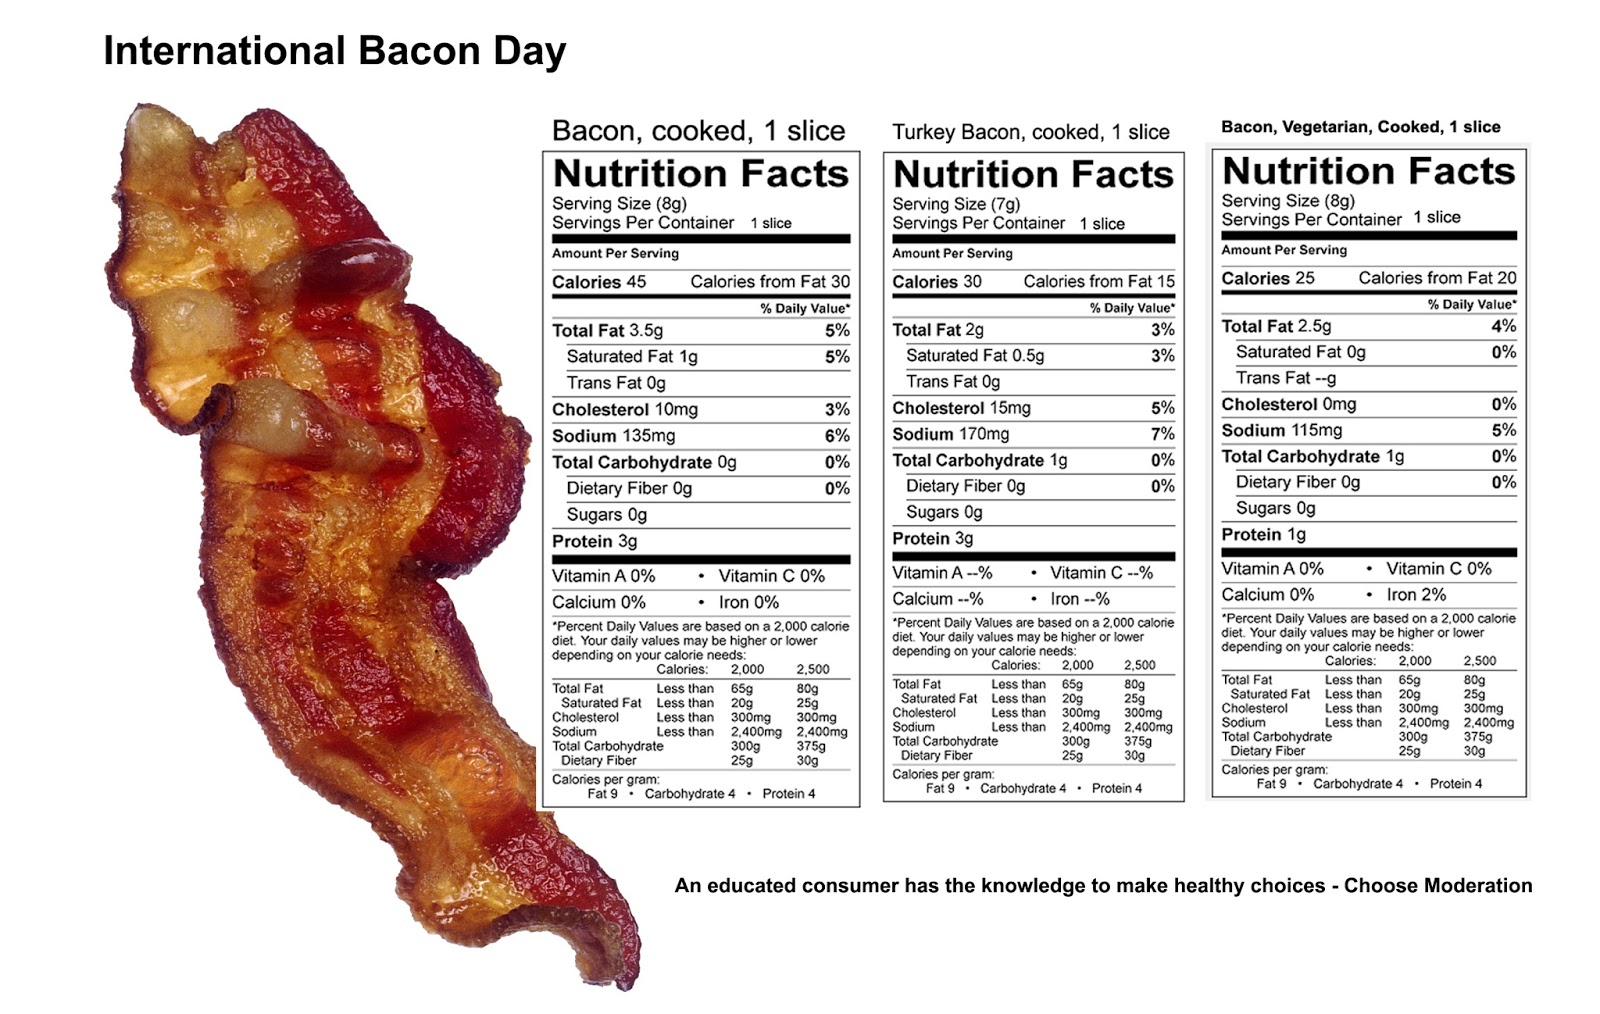 Dietitians Online Blog: International Bacon Day - Food Safety and ...